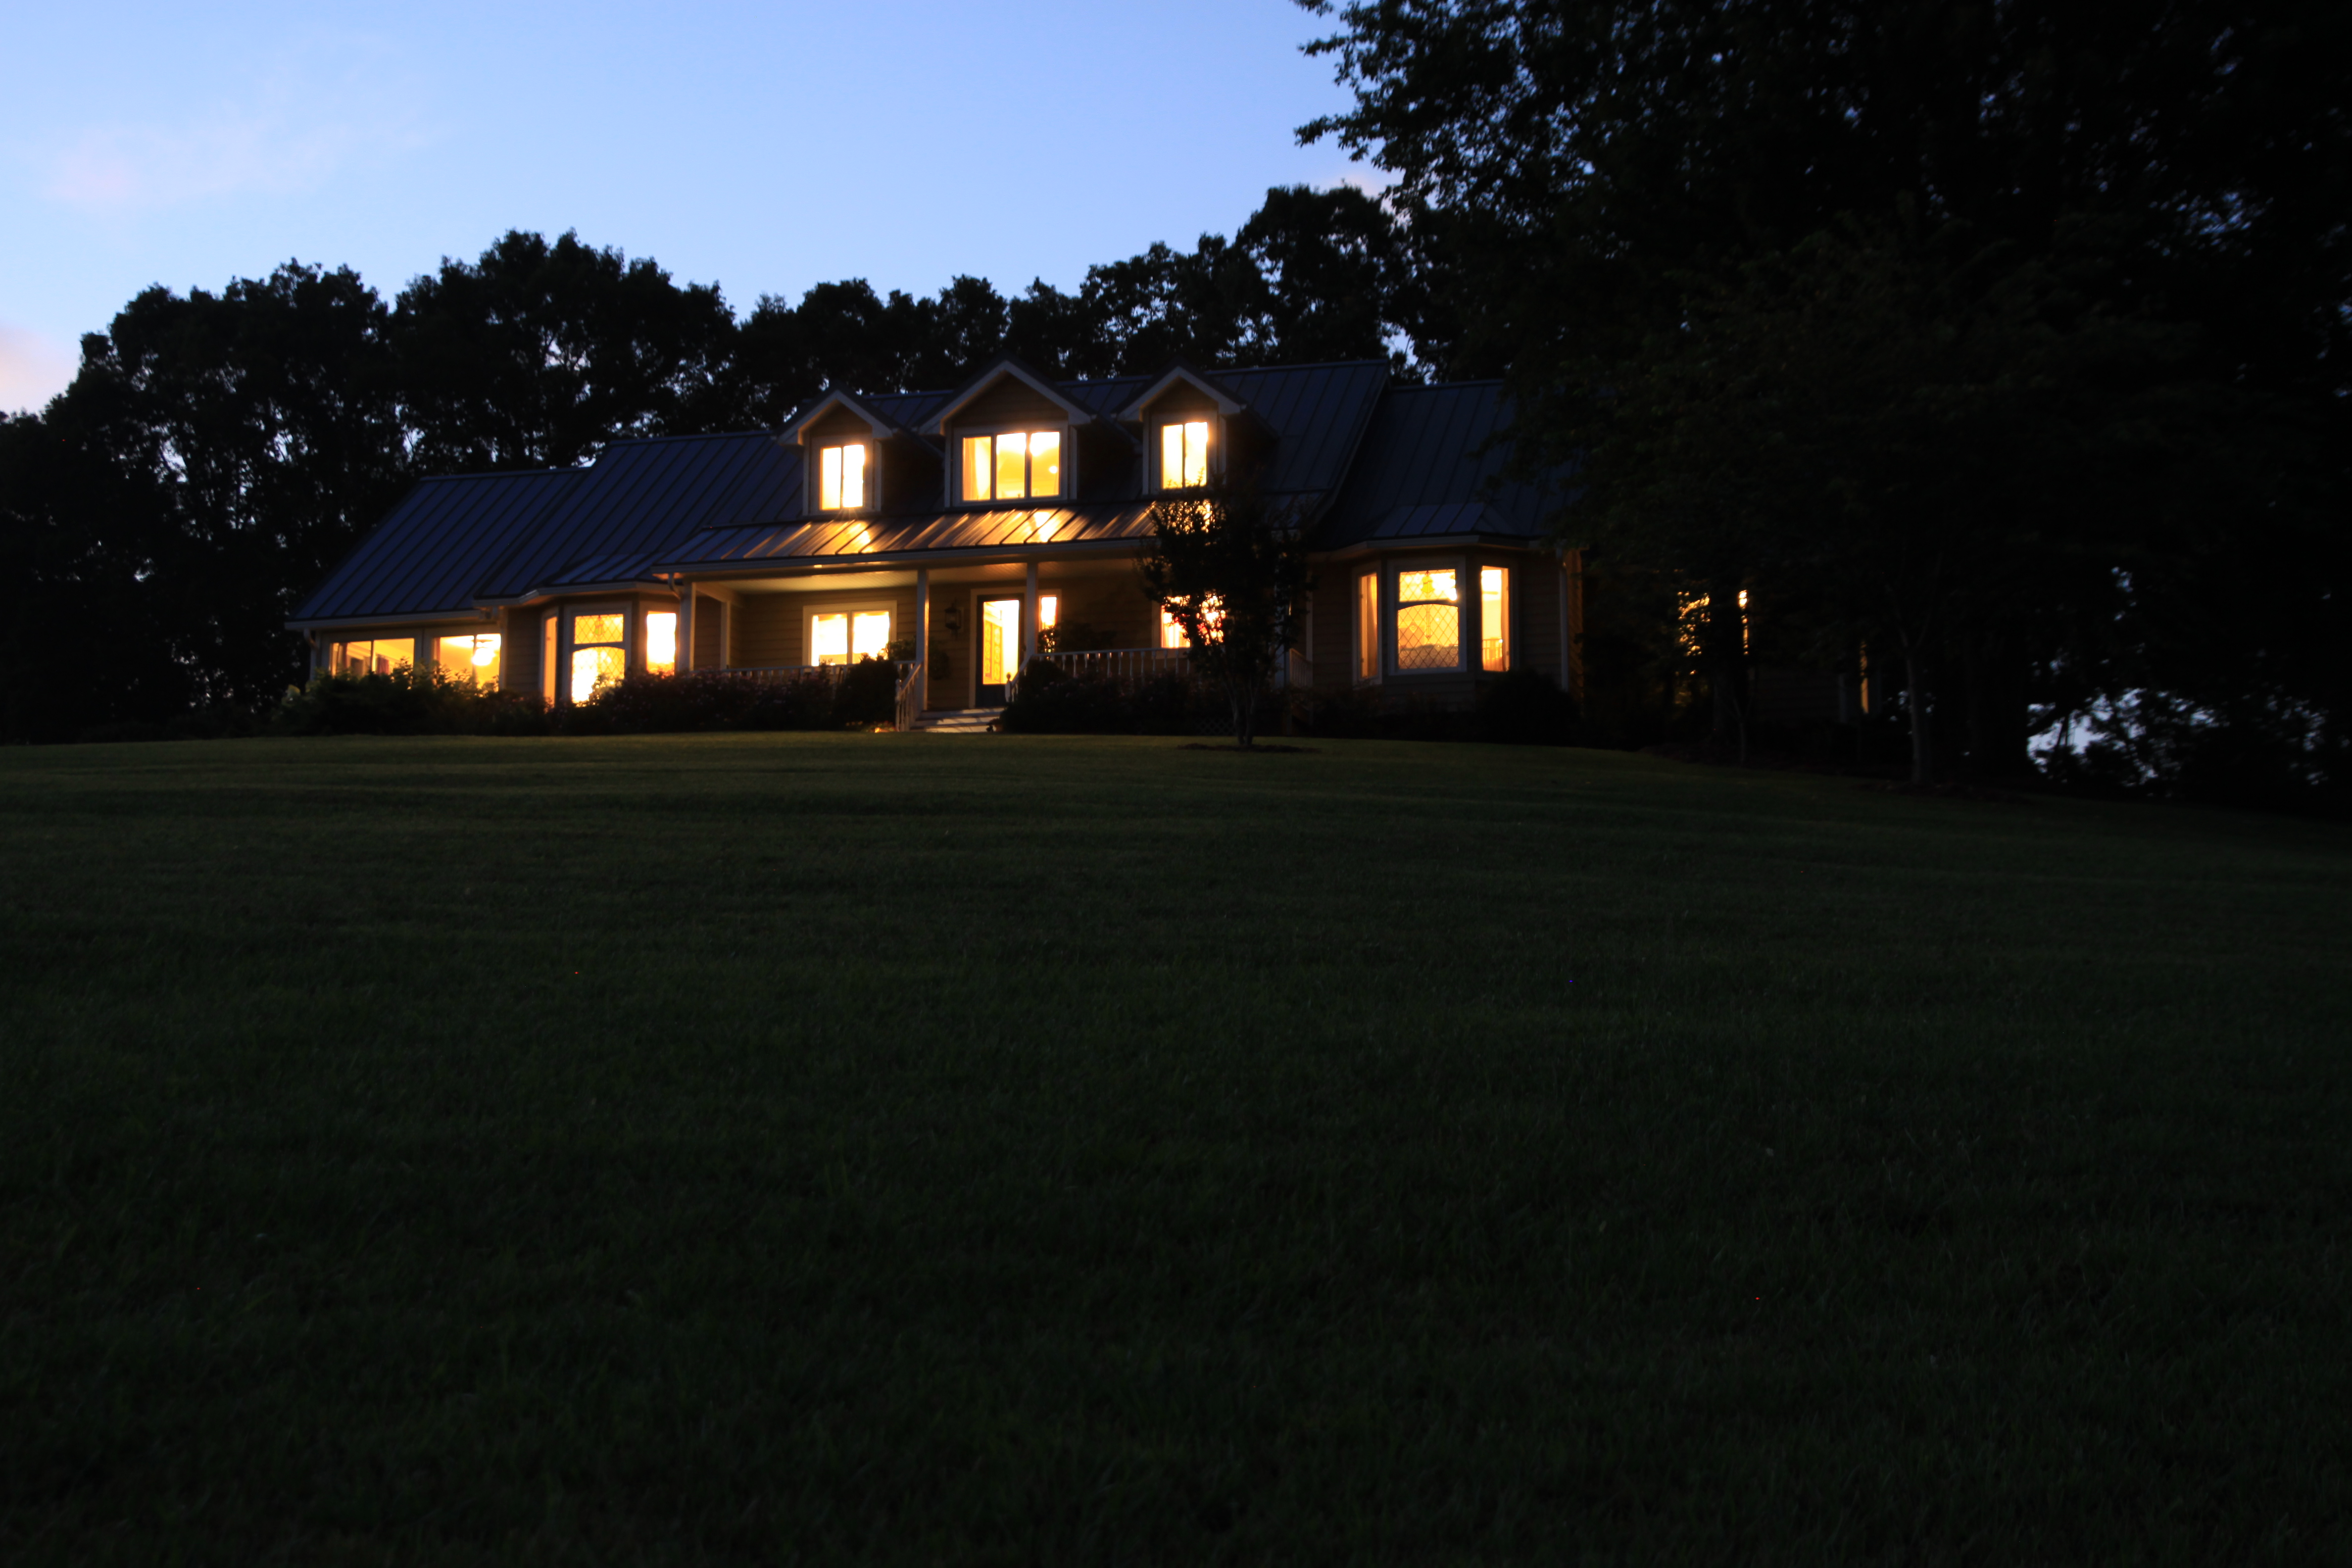 front view of house at dusk